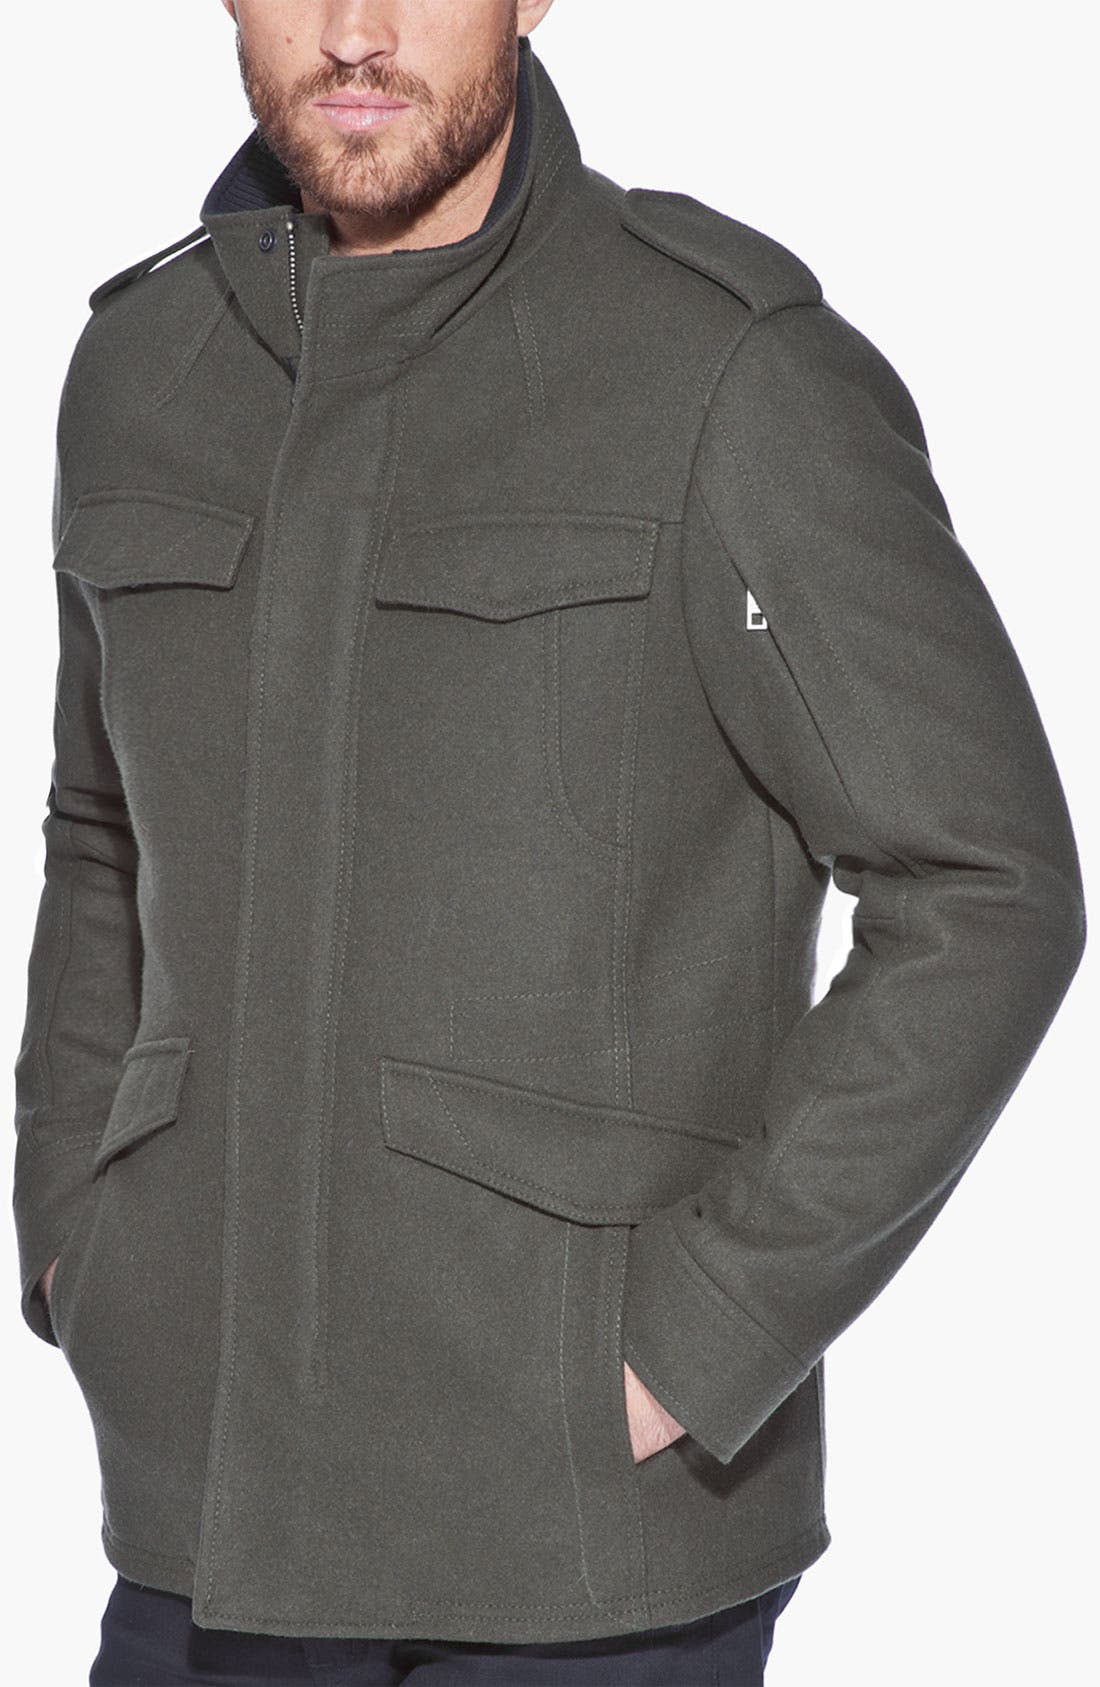 Main Image - Andrew Marc 'Fraction' Wool Blend Jacket